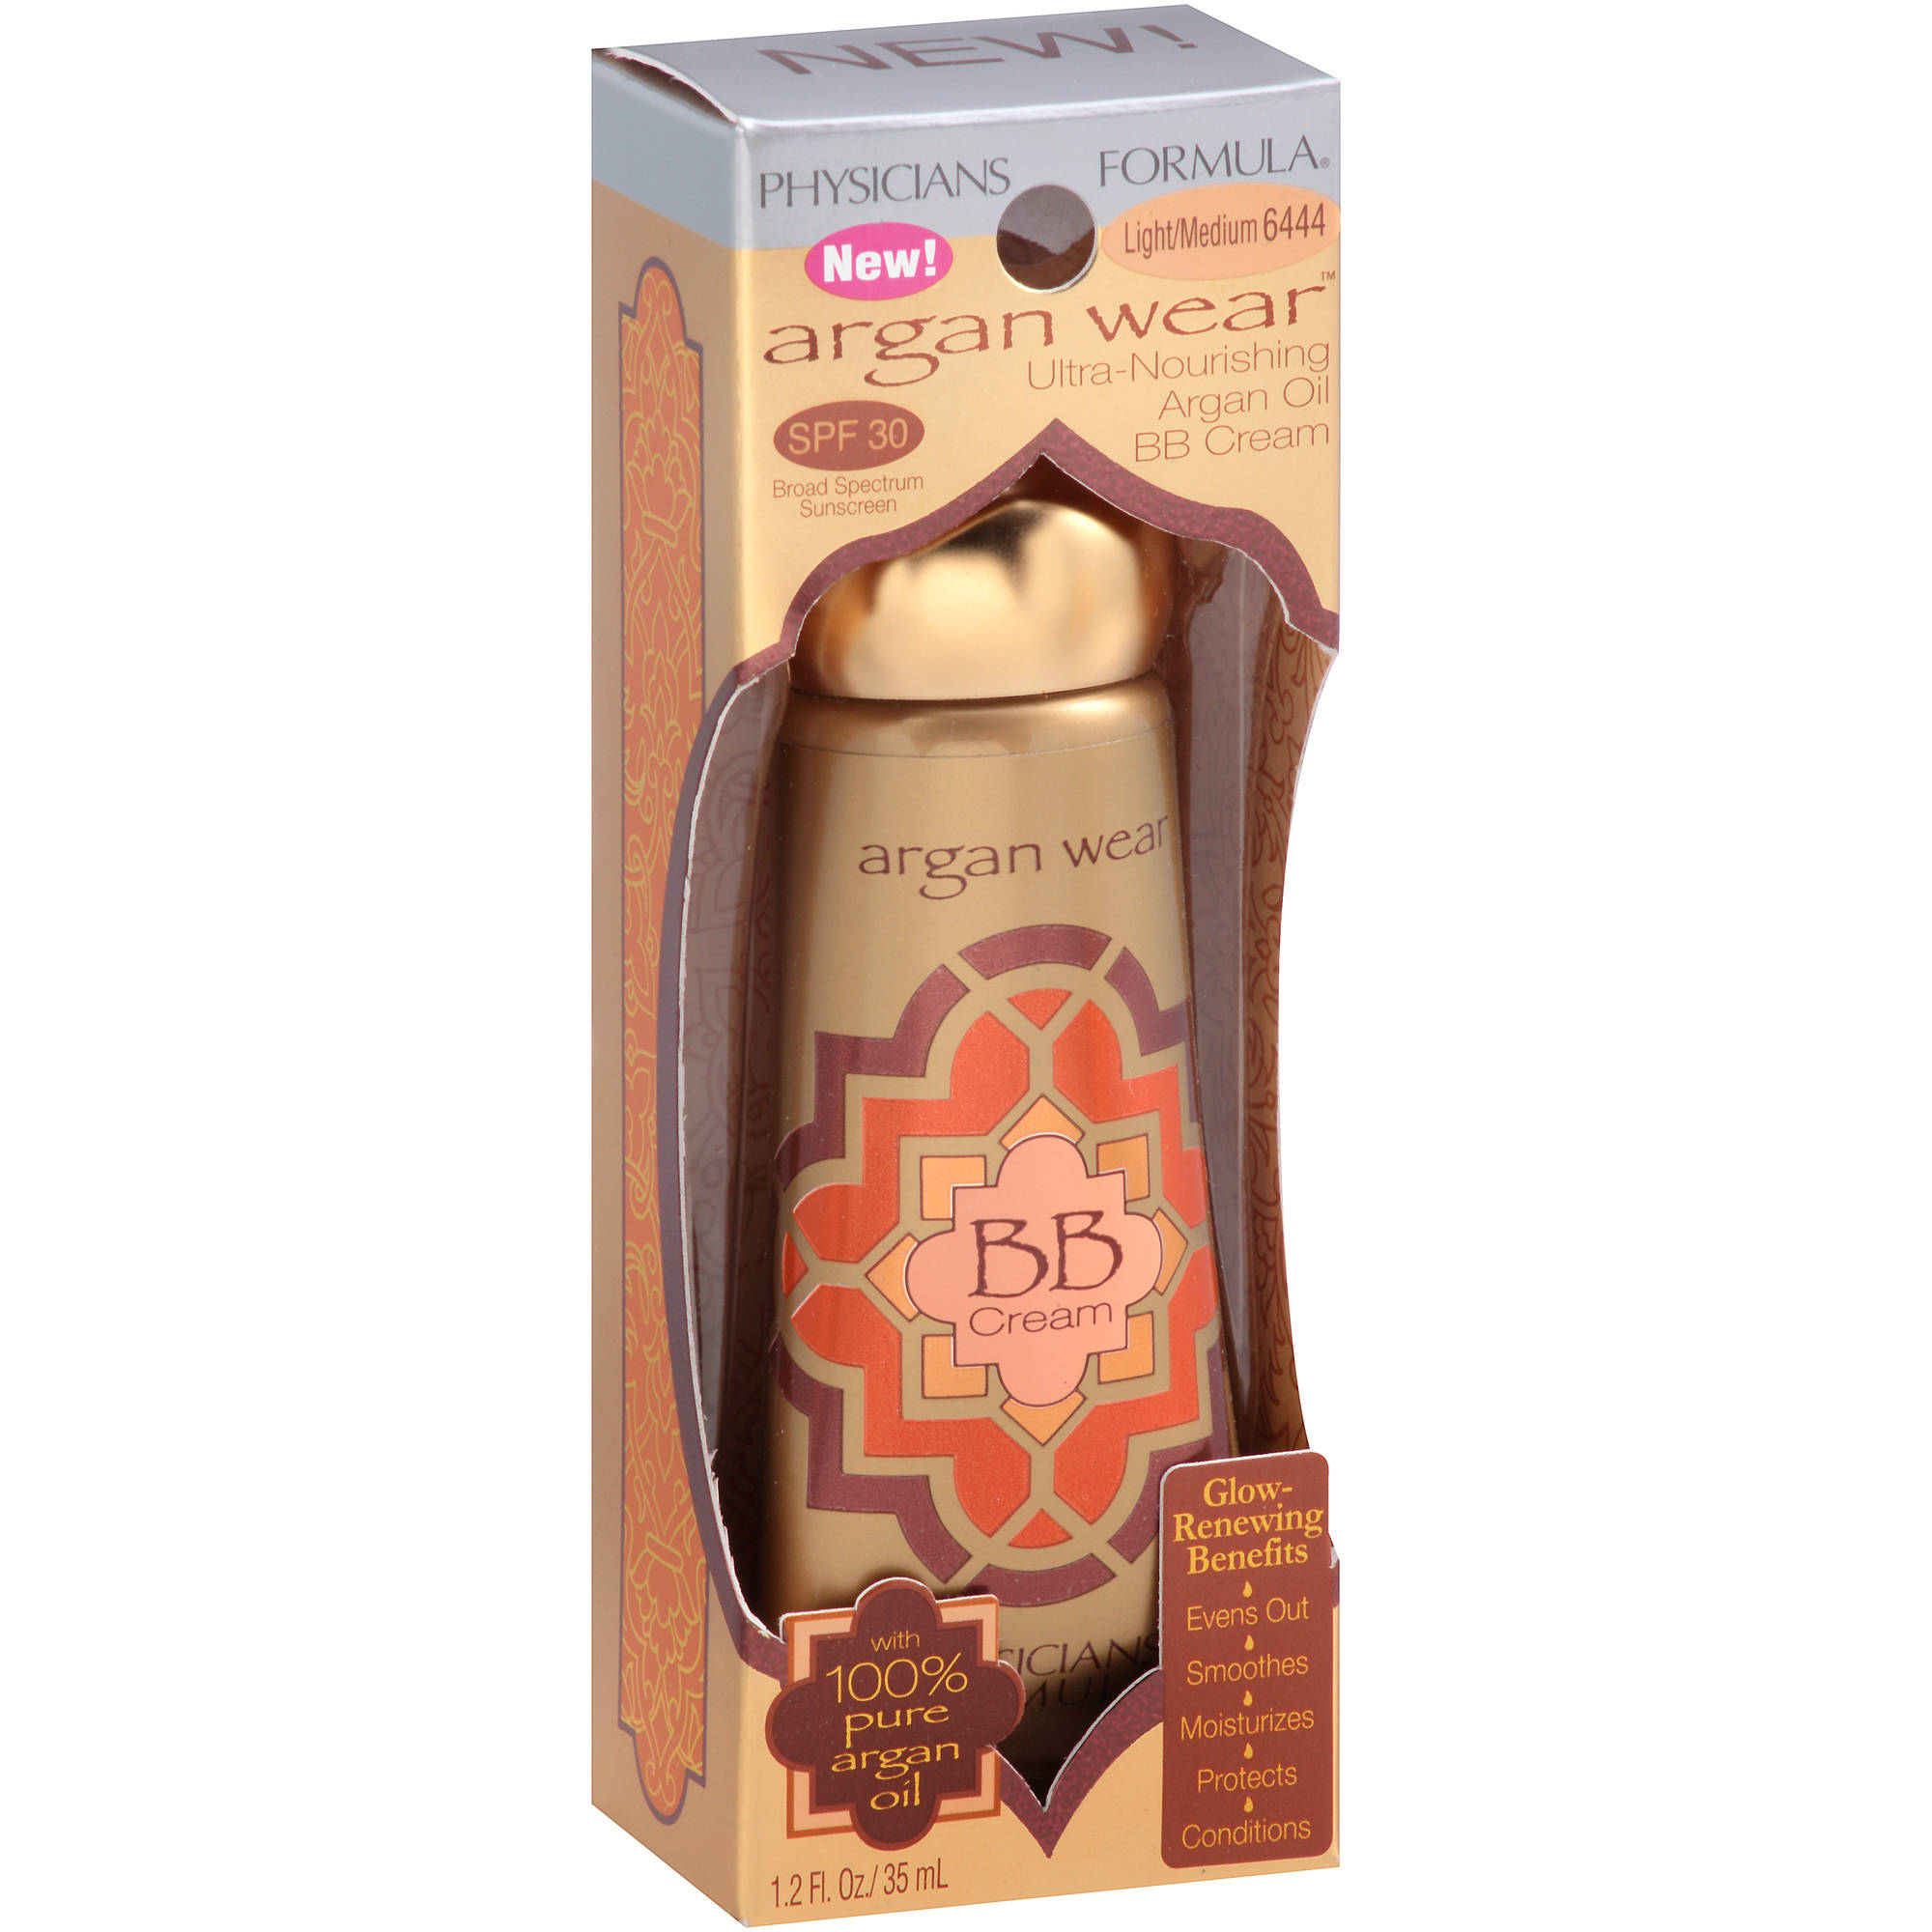 Physicians Formula Argan Wear Ultra-Nourishing Argan Oil BB Cream, 6444 Light/Medium, 1.2 fl oz